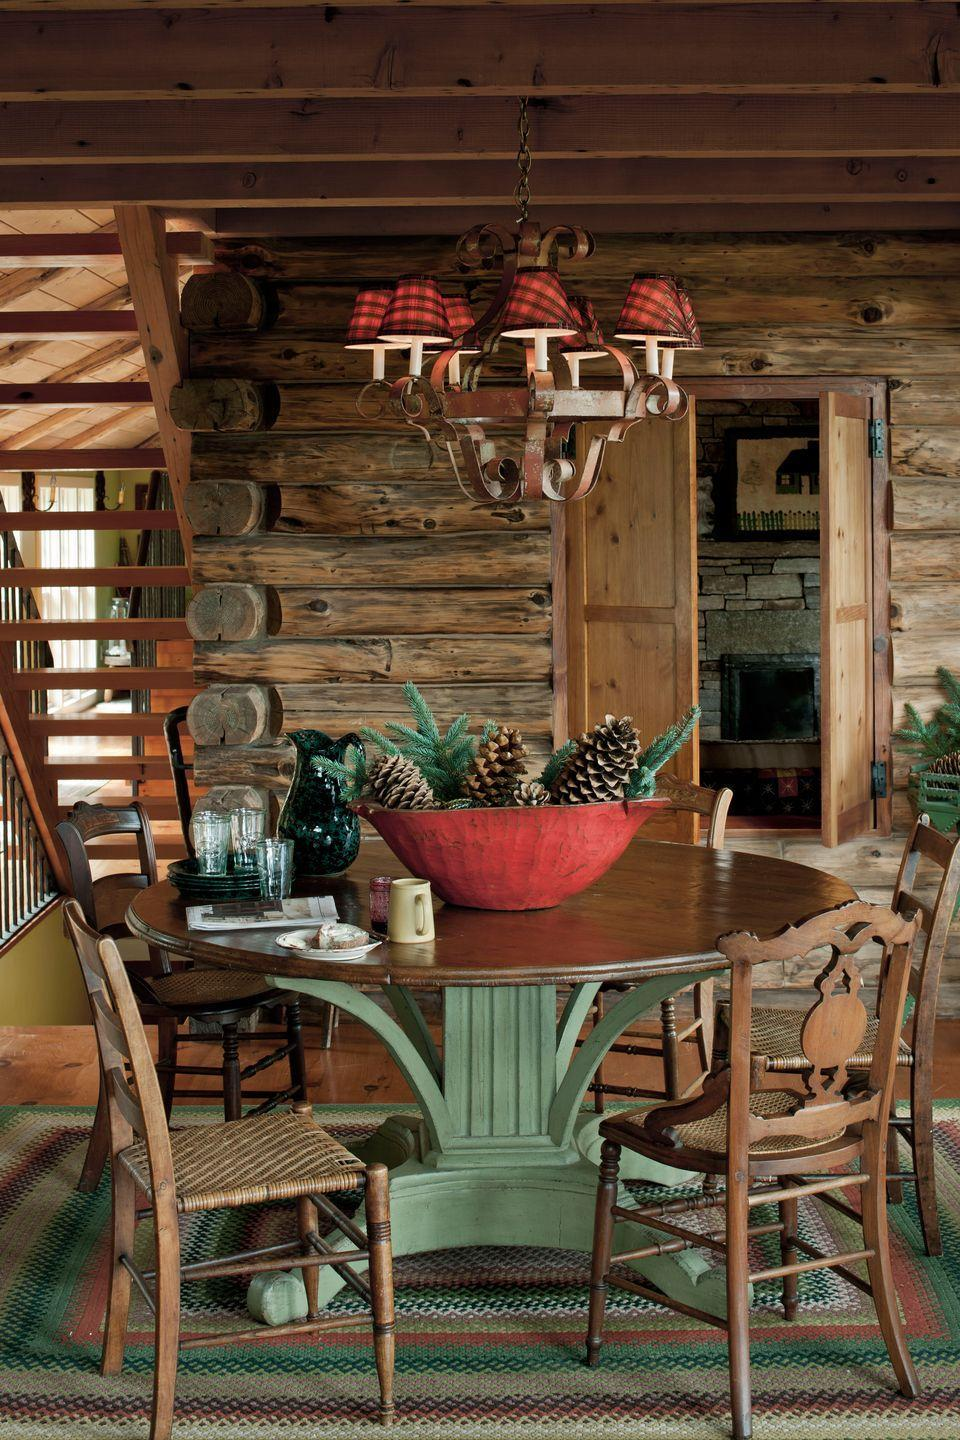 """<p>Pinecones and evergreen branches offer an unfussy alternative to a floral centerpiece in this <a href=""""https://www.countryliving.com/remodeling-renovation/home-makeovers/how-to/g1226/expanding-a-cozy-log-cabin/"""" rel=""""nofollow noopener"""" target=""""_blank"""" data-ylk=""""slk:Vermont cabin"""" class=""""link rapid-noclick-resp"""">Vermont cabin</a>.</p>"""